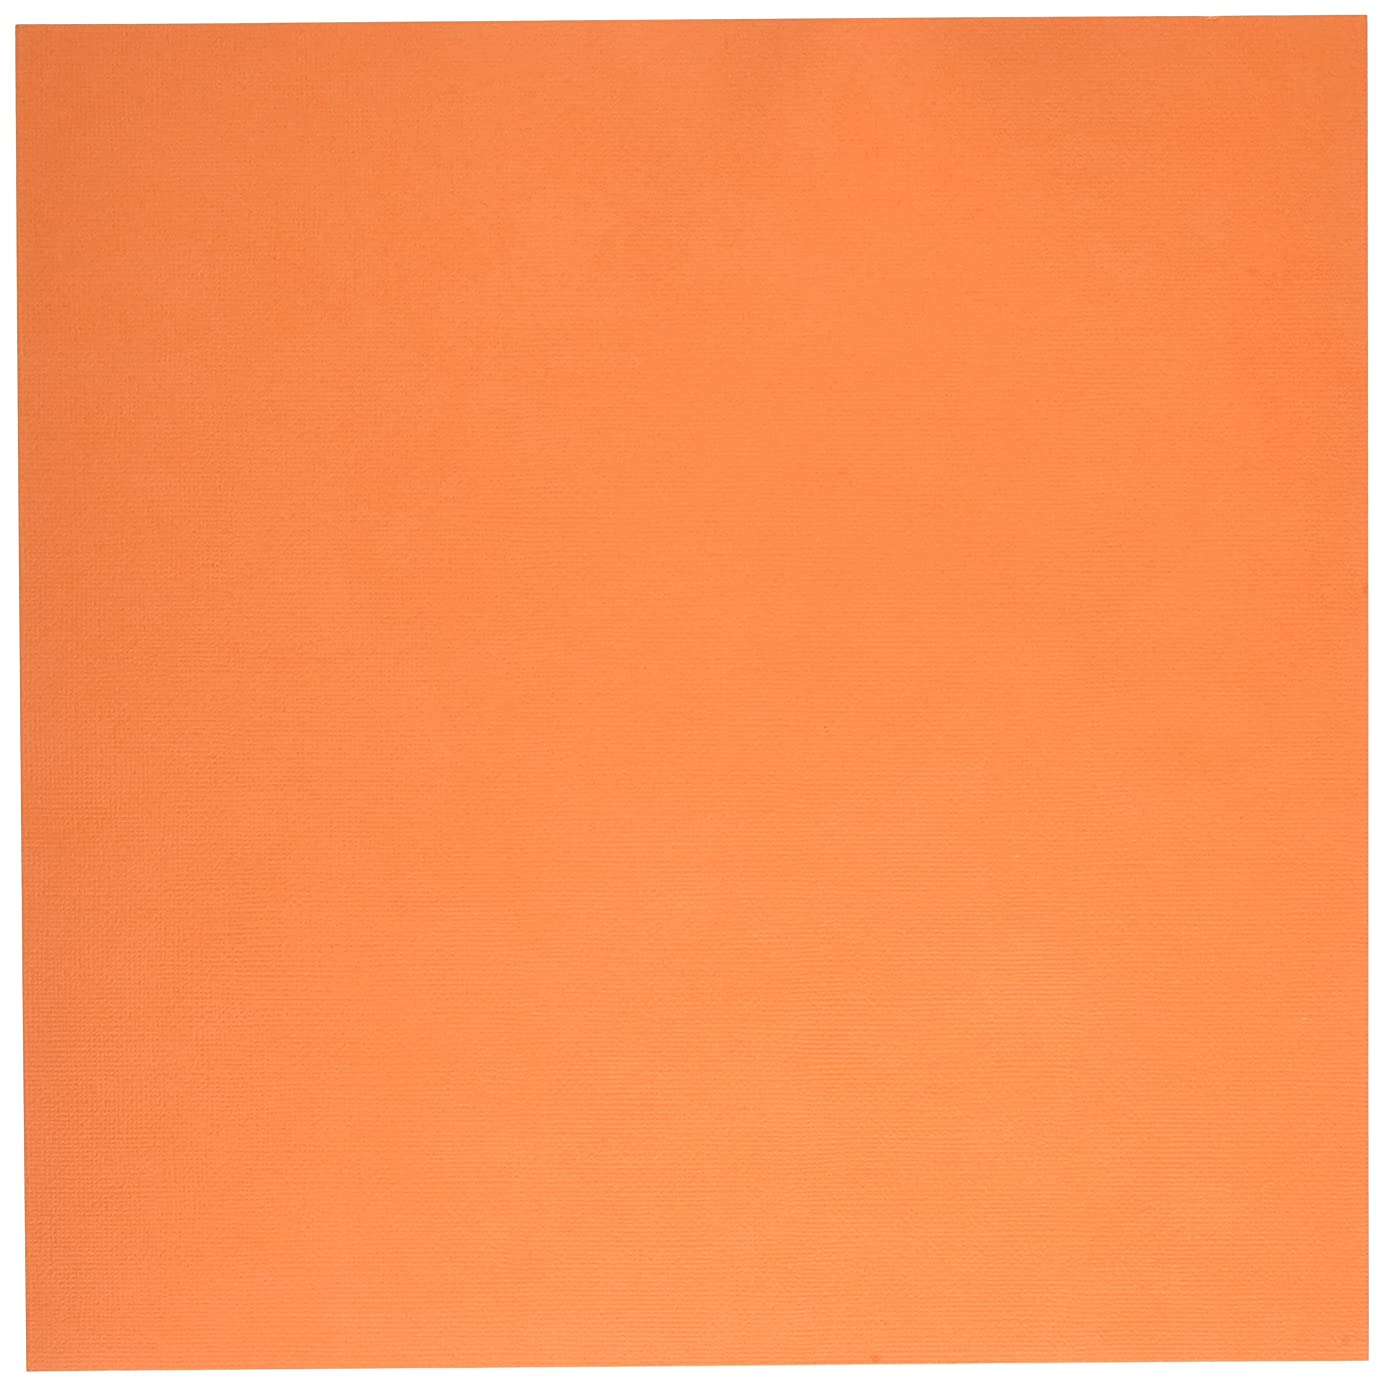 American Crafts 12x12 Cardstock, Carrot